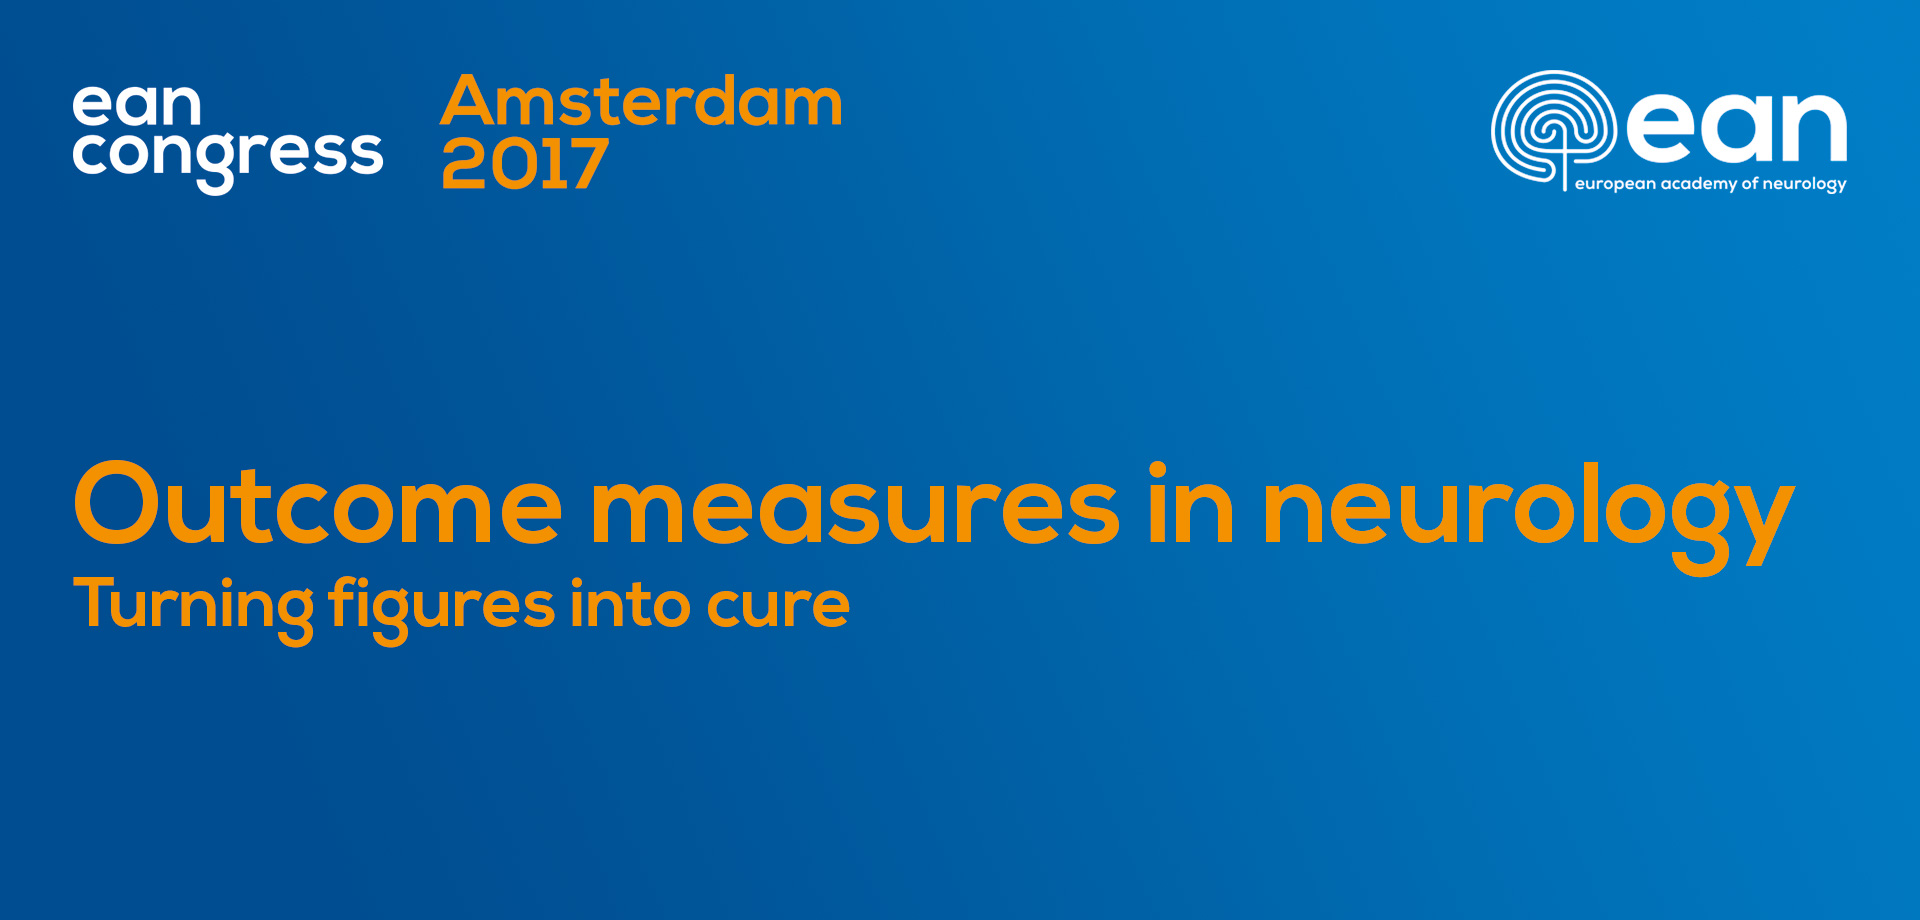 Der EAN Kongress in Amsterdam 2017 hat das Thema Outcome measures in neurology. Turning figures into cure.